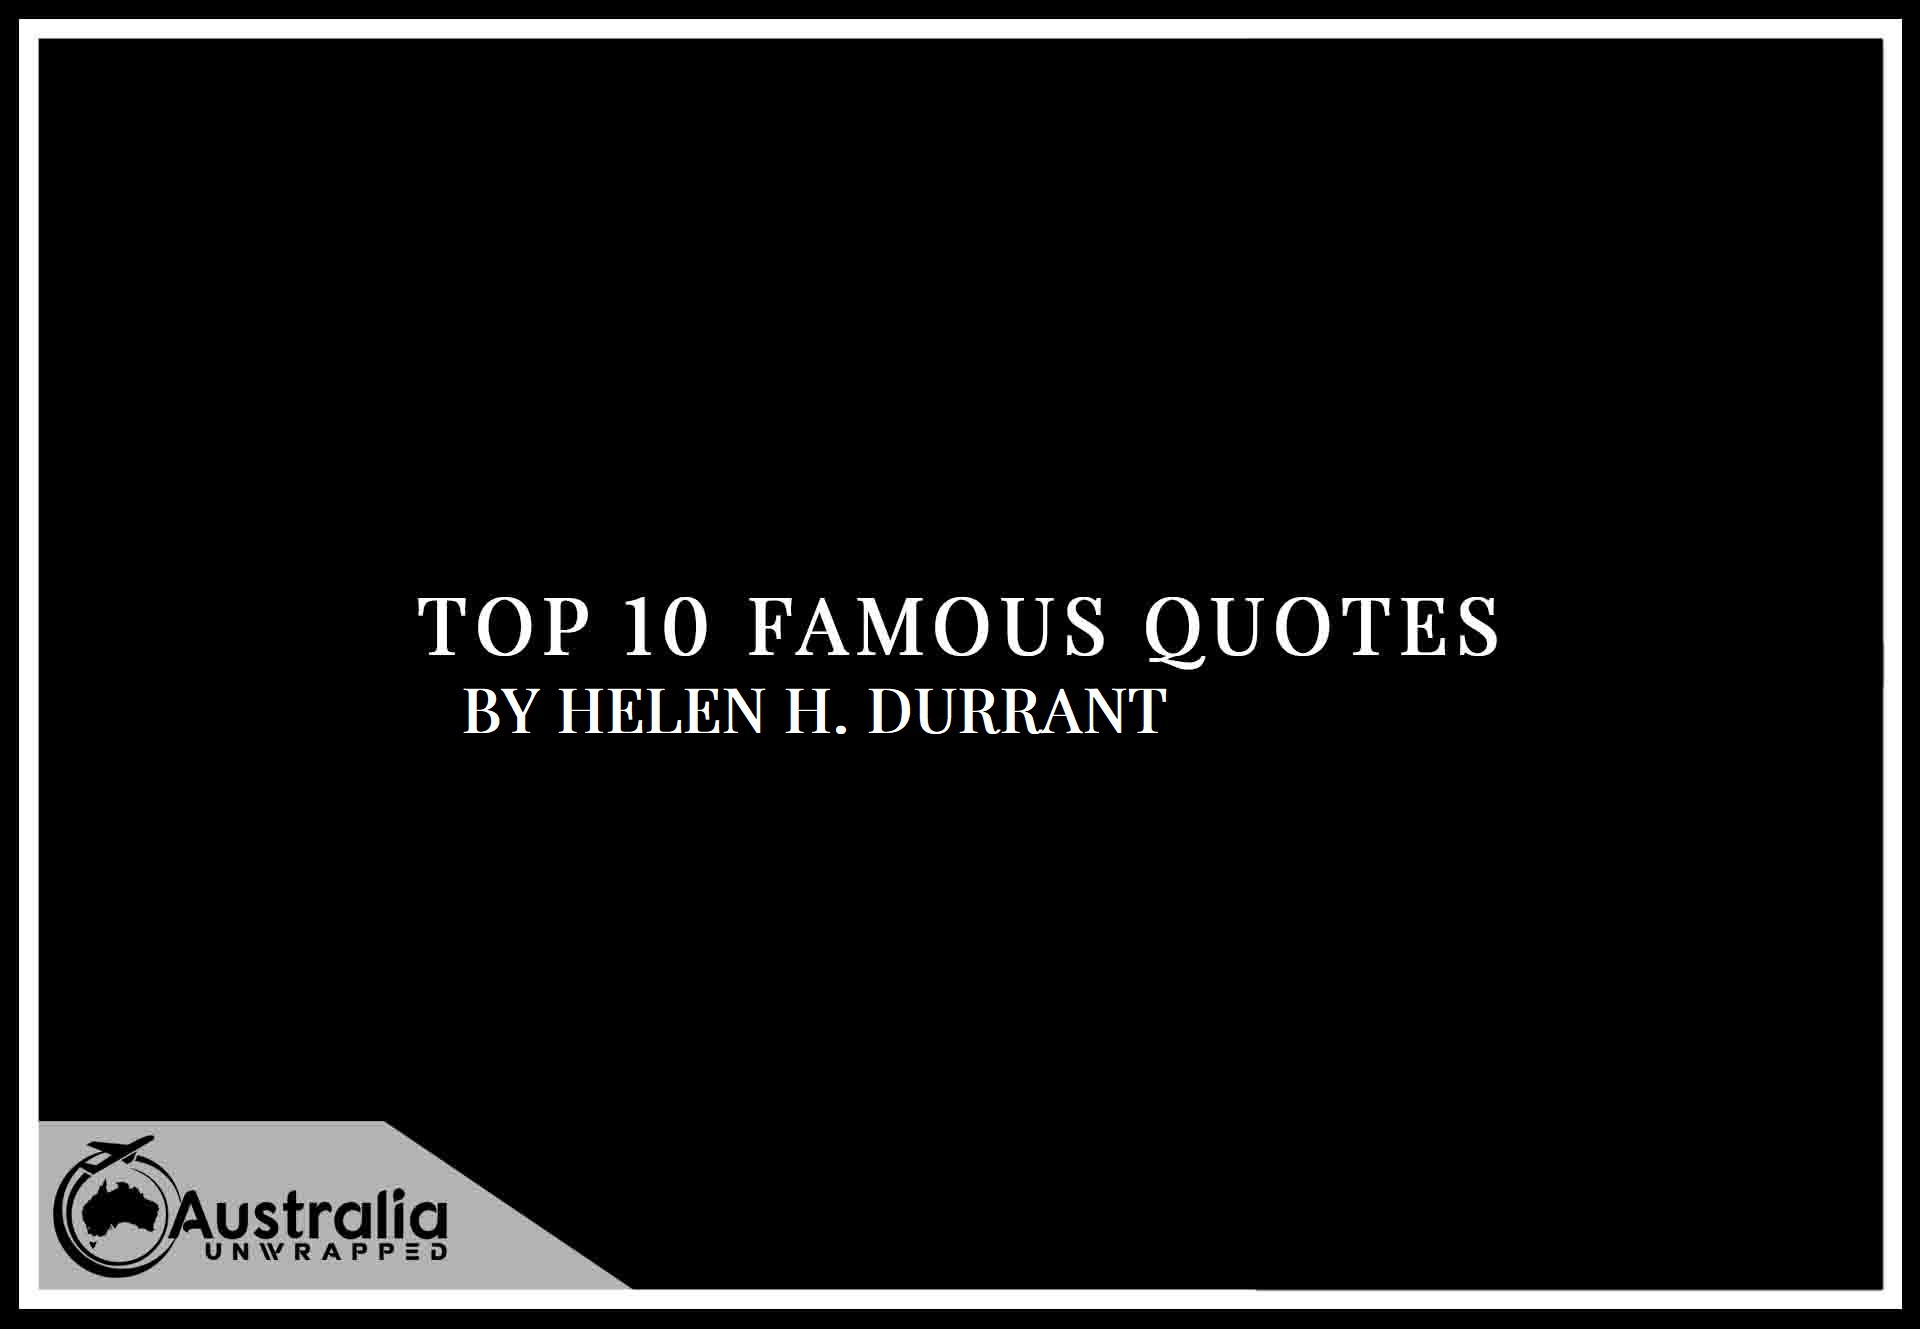 Top 10 Famous Quotes by Author Helen H. Durrant